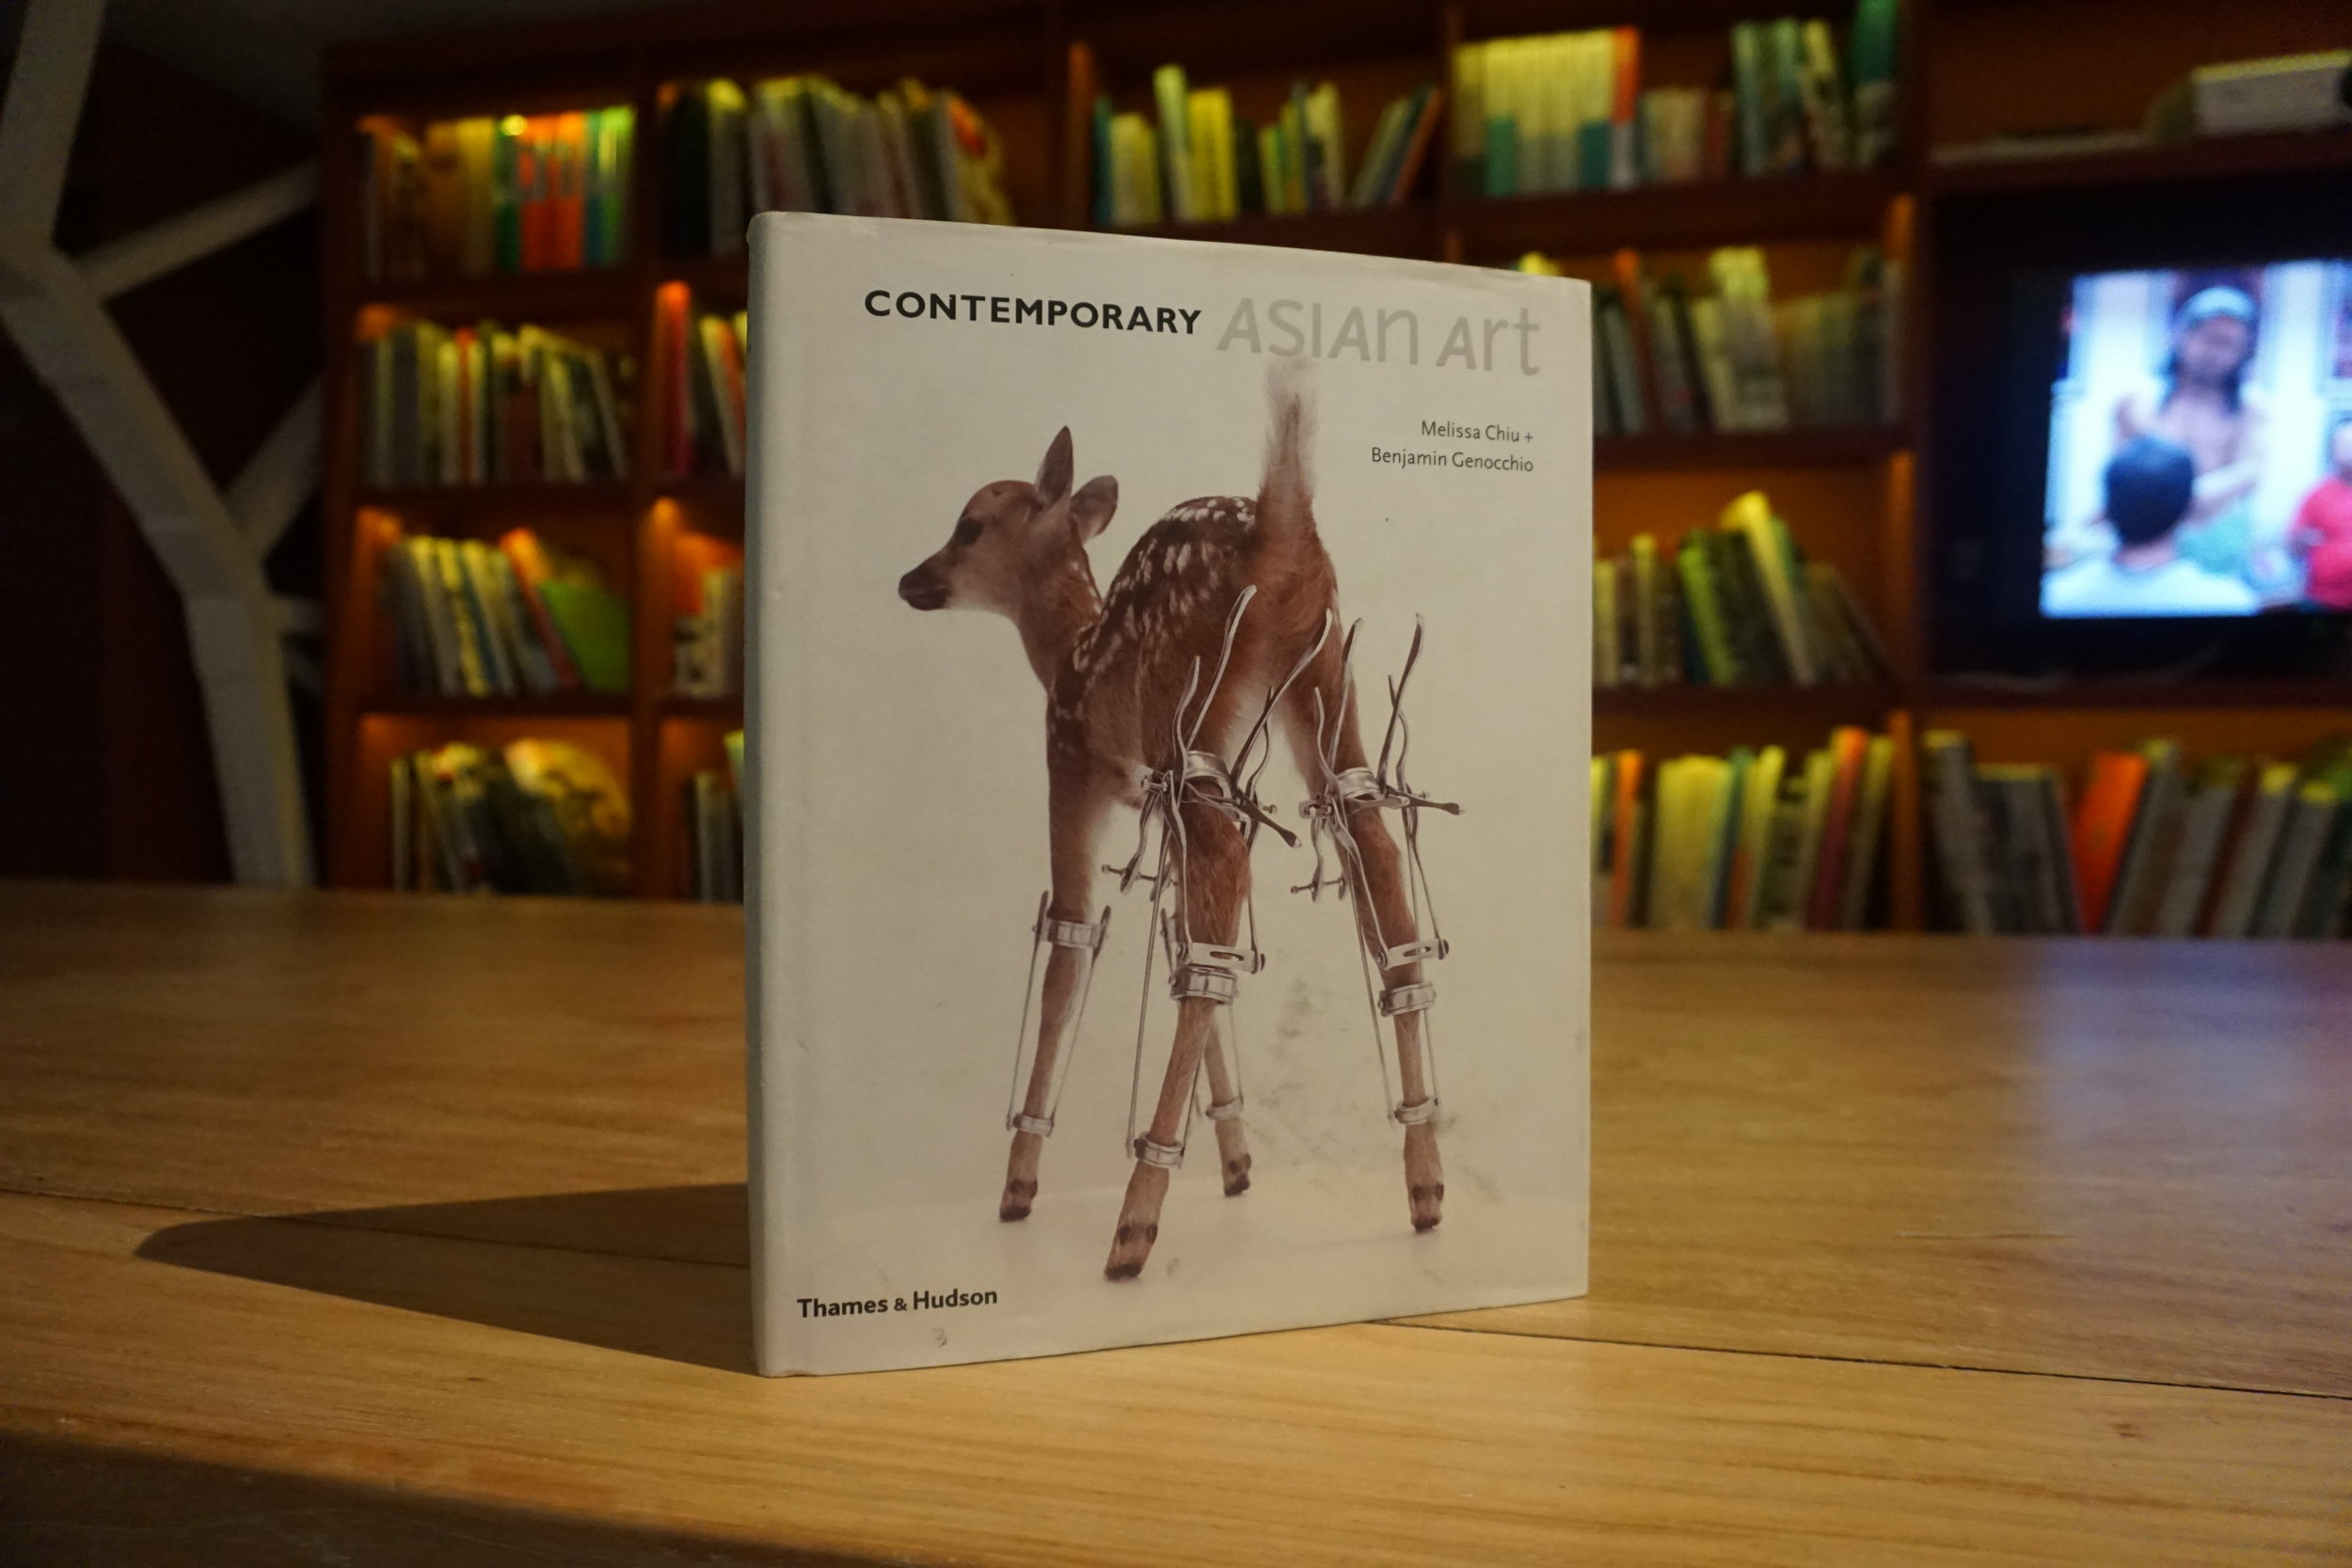 Contemporary Asian Art (Thames & Hudson Ltd., 2010) by Melissa Chiu and Benjamin Genocchio.